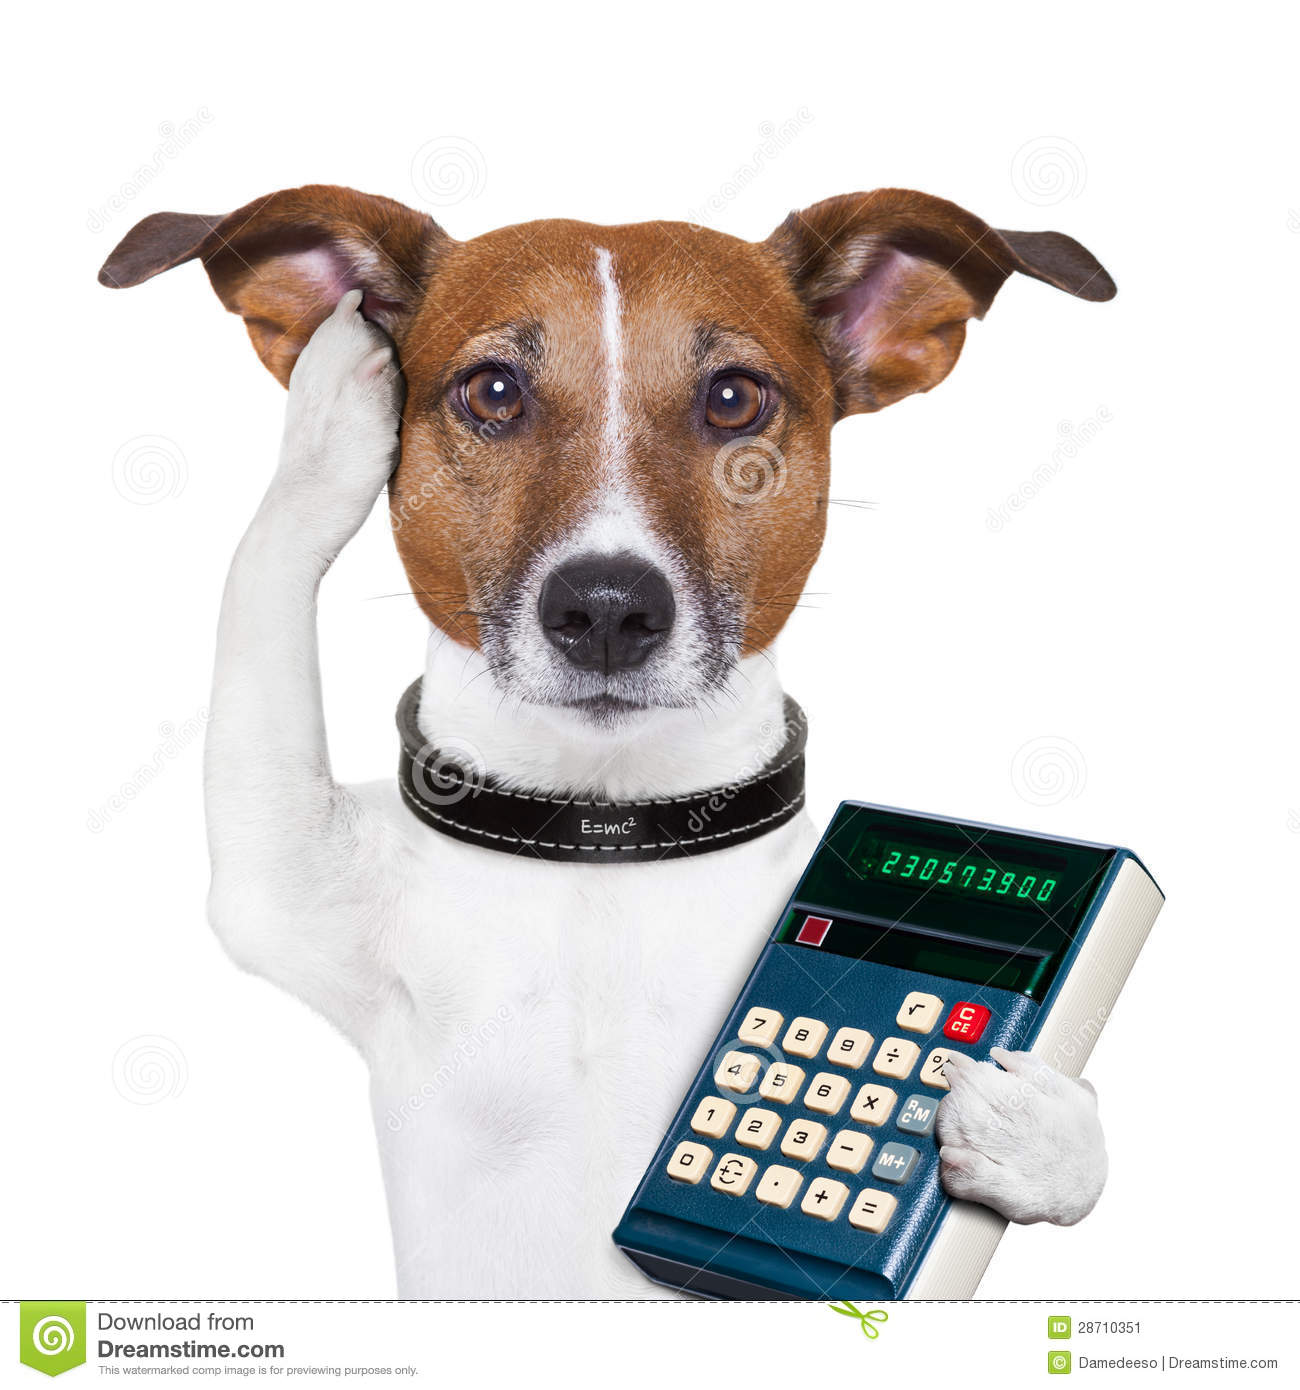 More similar stock images of ` Successful dog accountant `